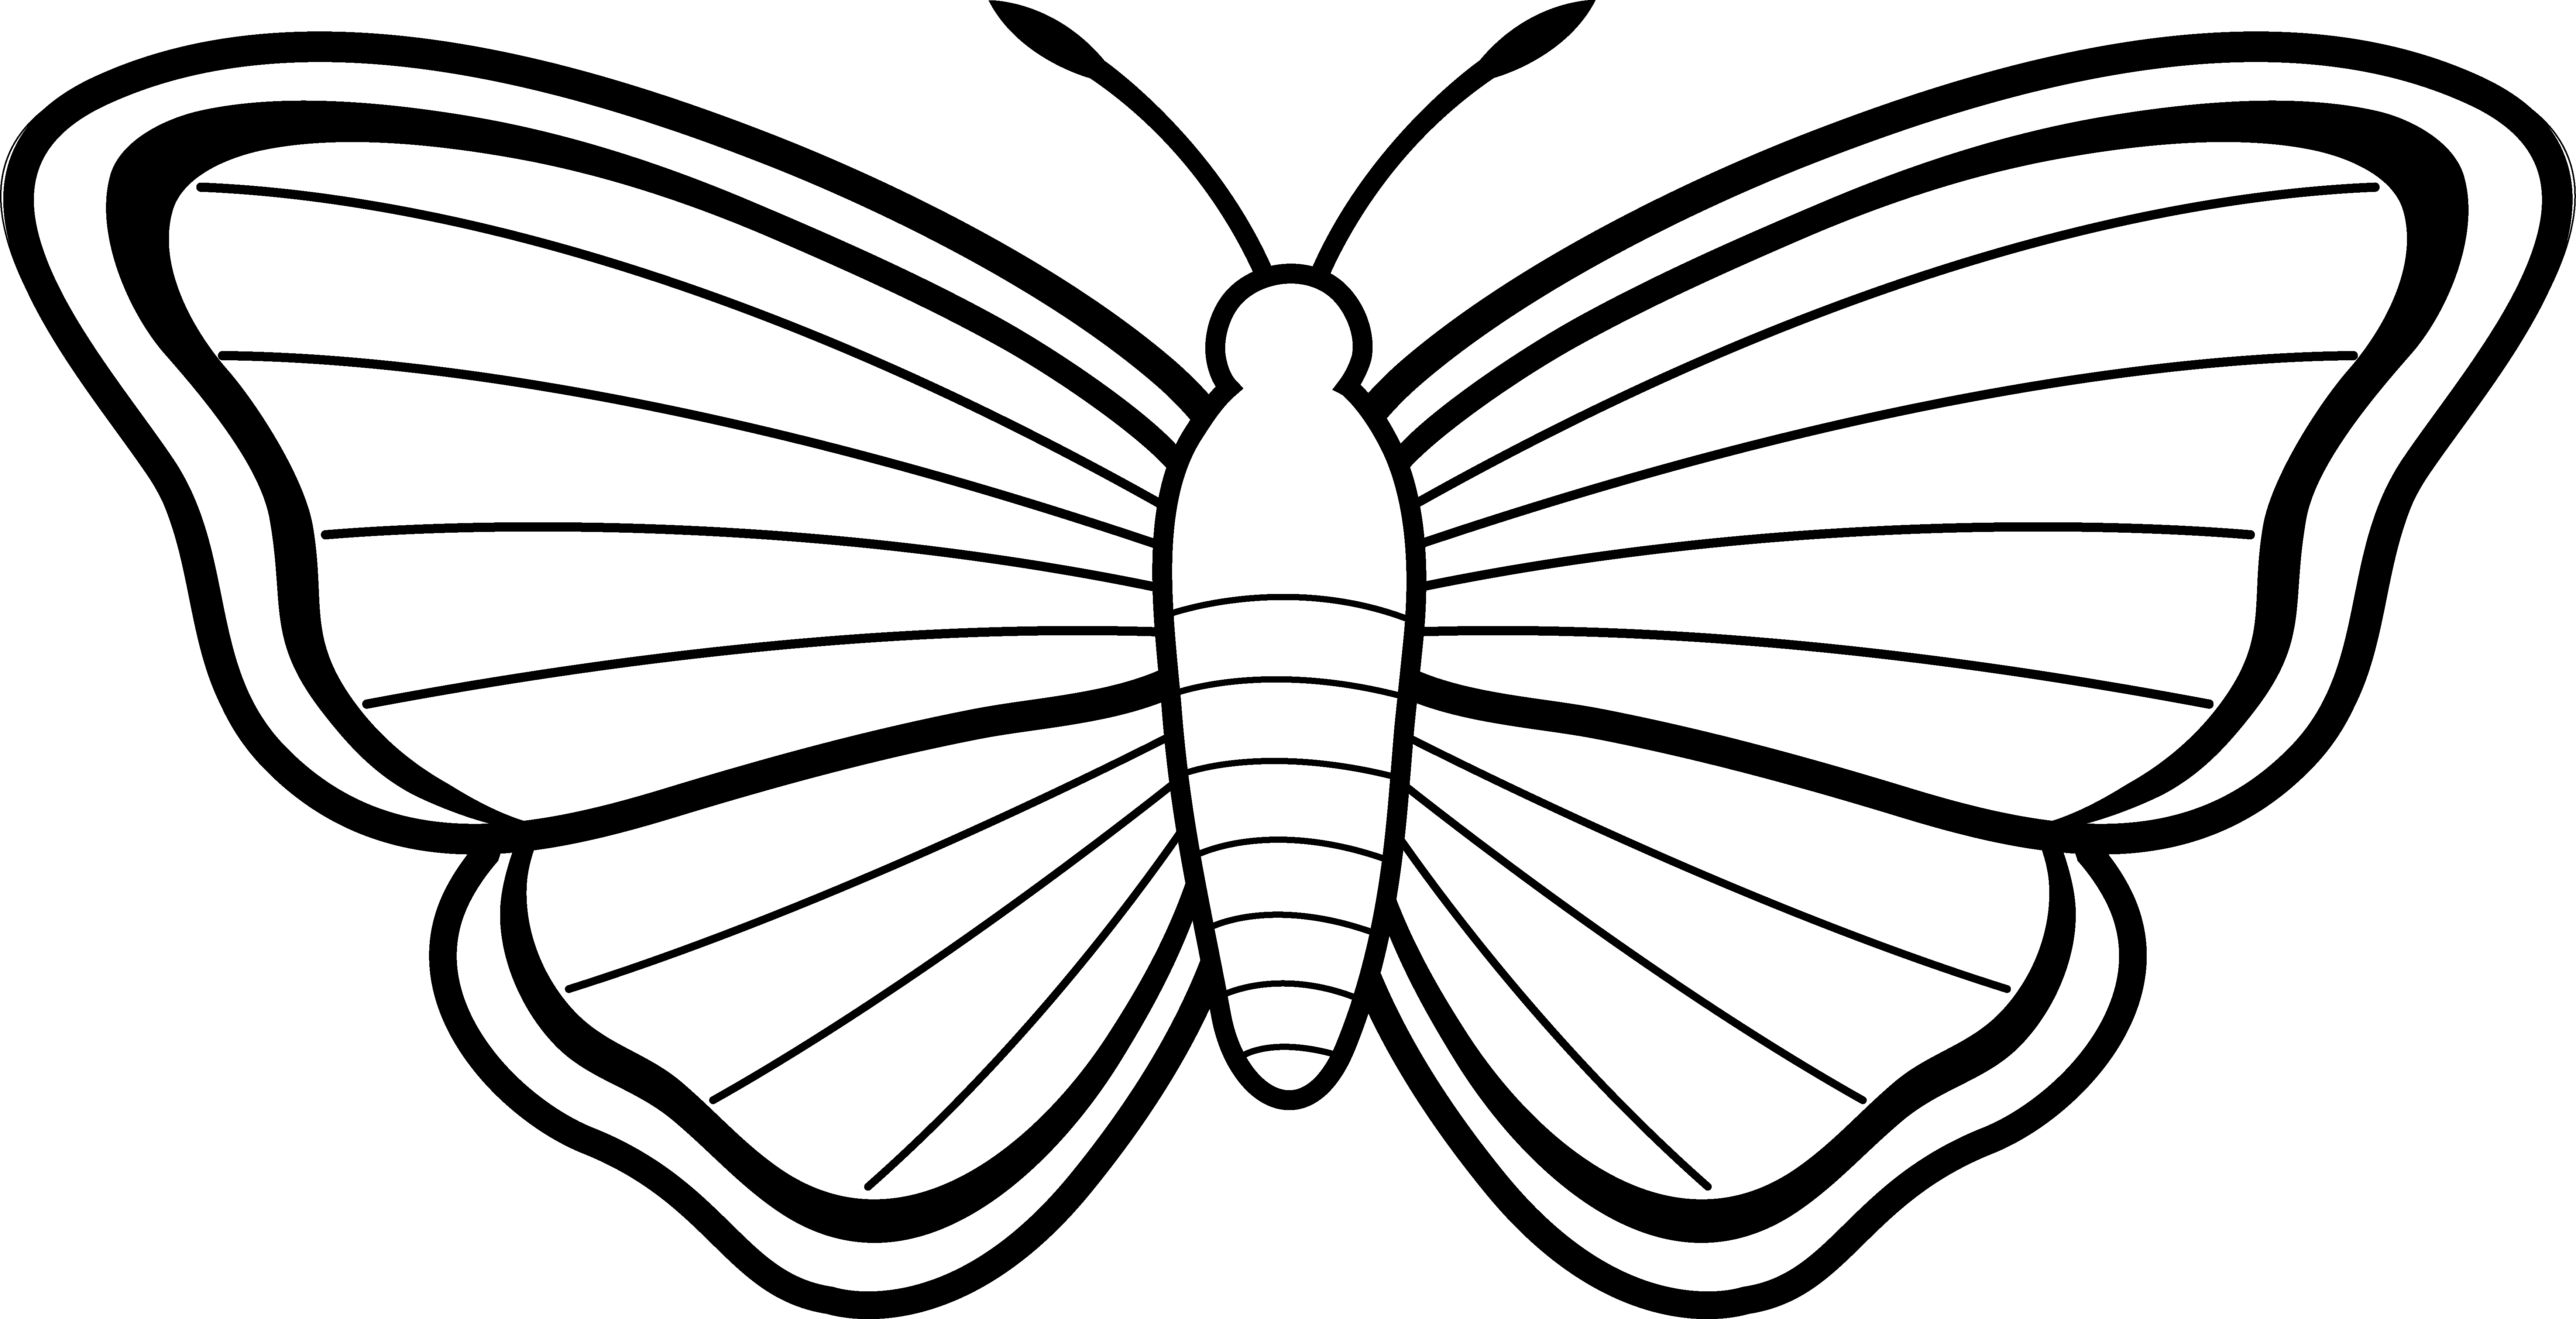 Pappillon clipart black and white cartoon outline clip library library Free Butterfly Images Black And White, Download Free Clip Art, Free ... clip library library